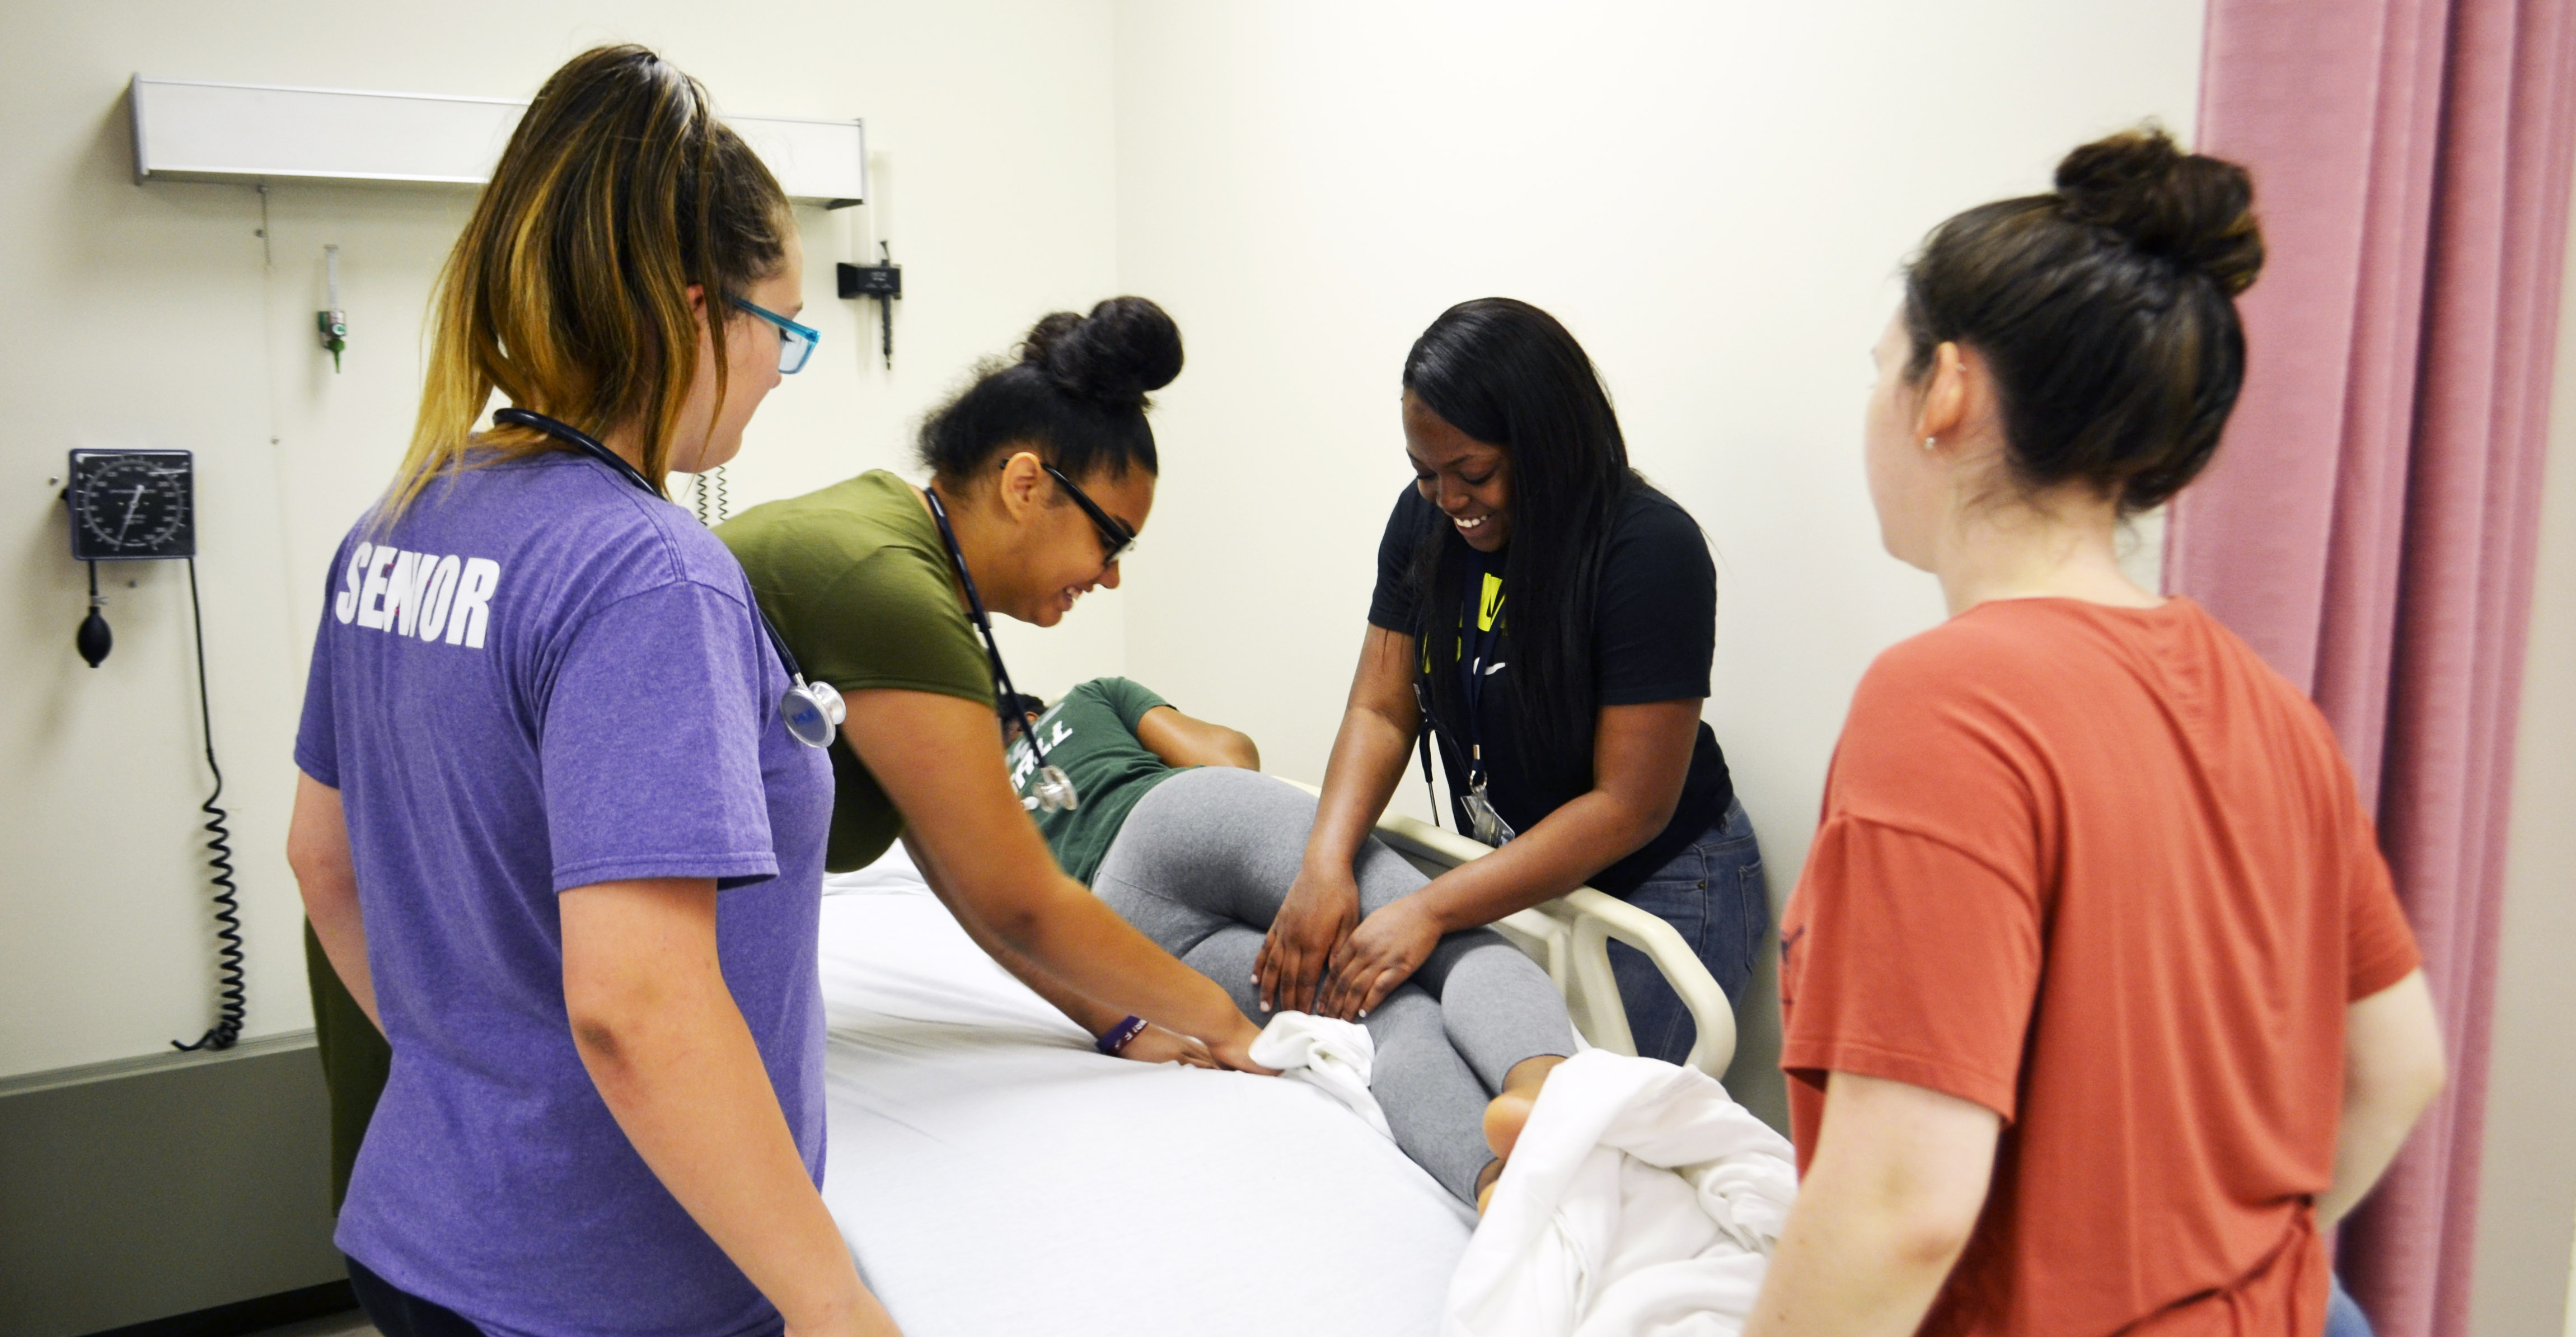 Senior nursing student, Rachel Benson (front, right), watches as Upward Bound students practice making a hospital bed occupied by a patient.